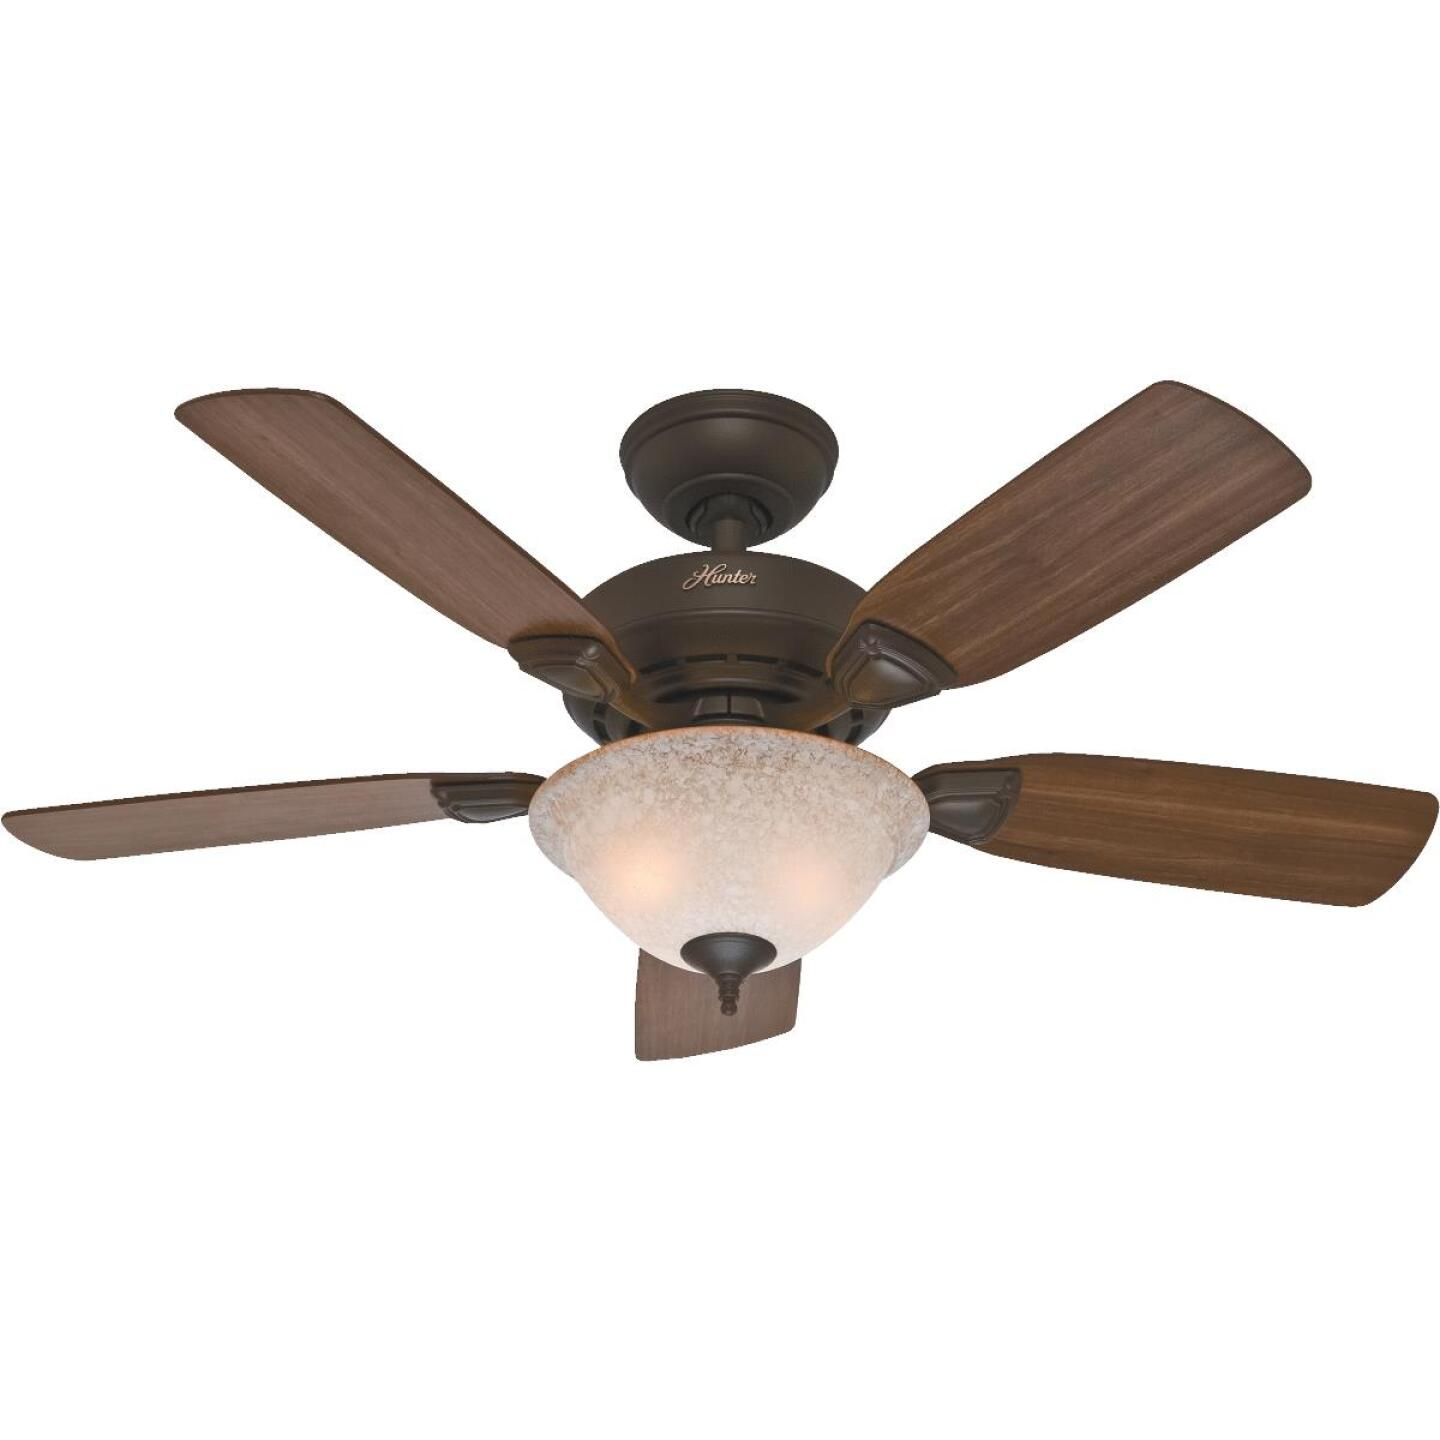 Hunter Caraway 44 In. New Bronze Ceiling Fan with Light Kit Image 1